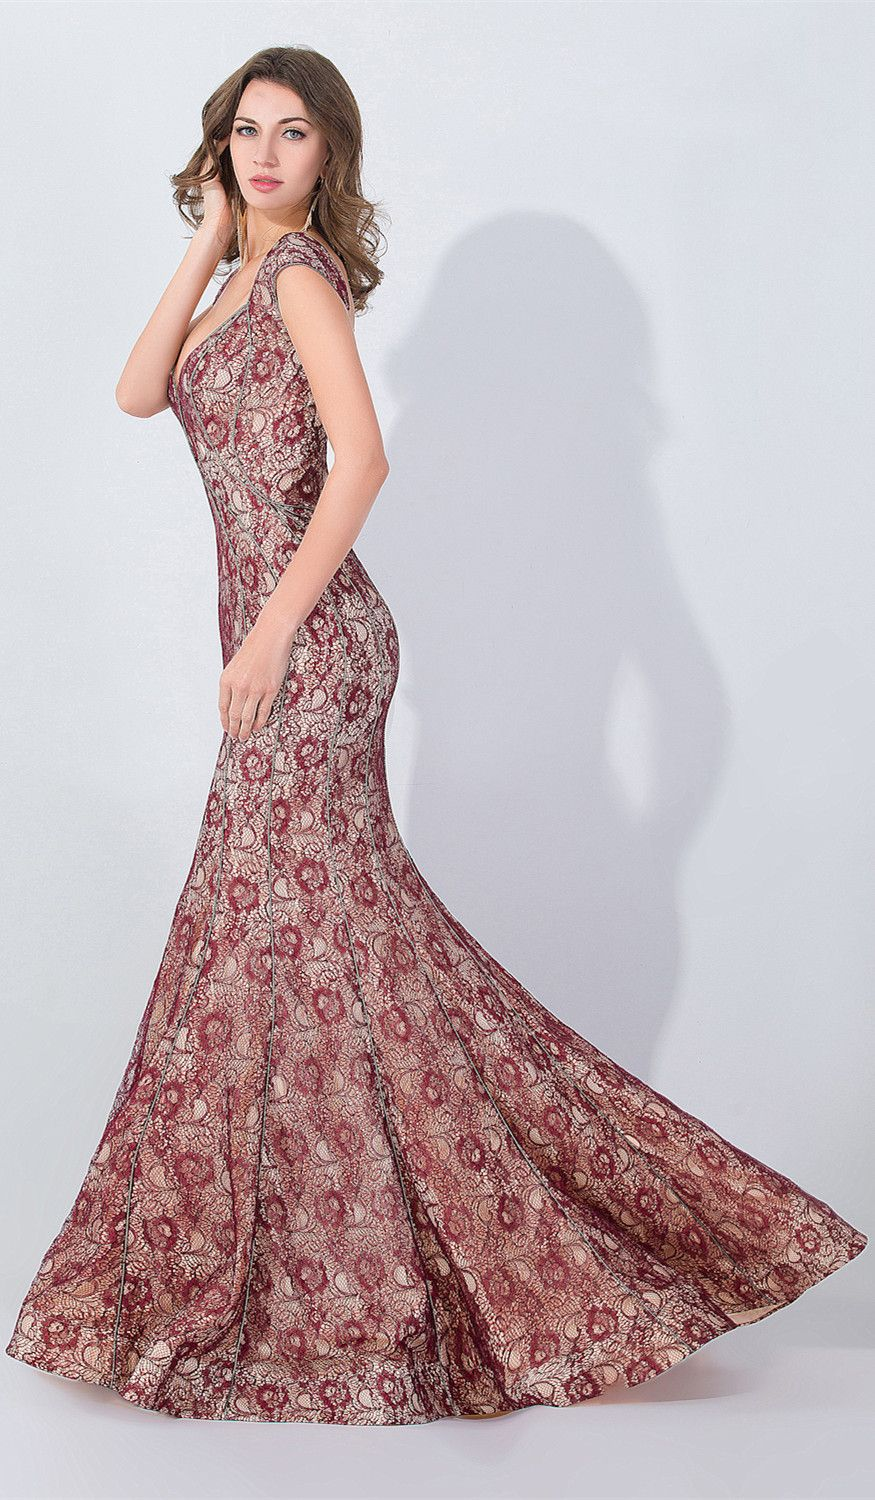 Mermaid red lace sexy popular long evening dresses lace beading